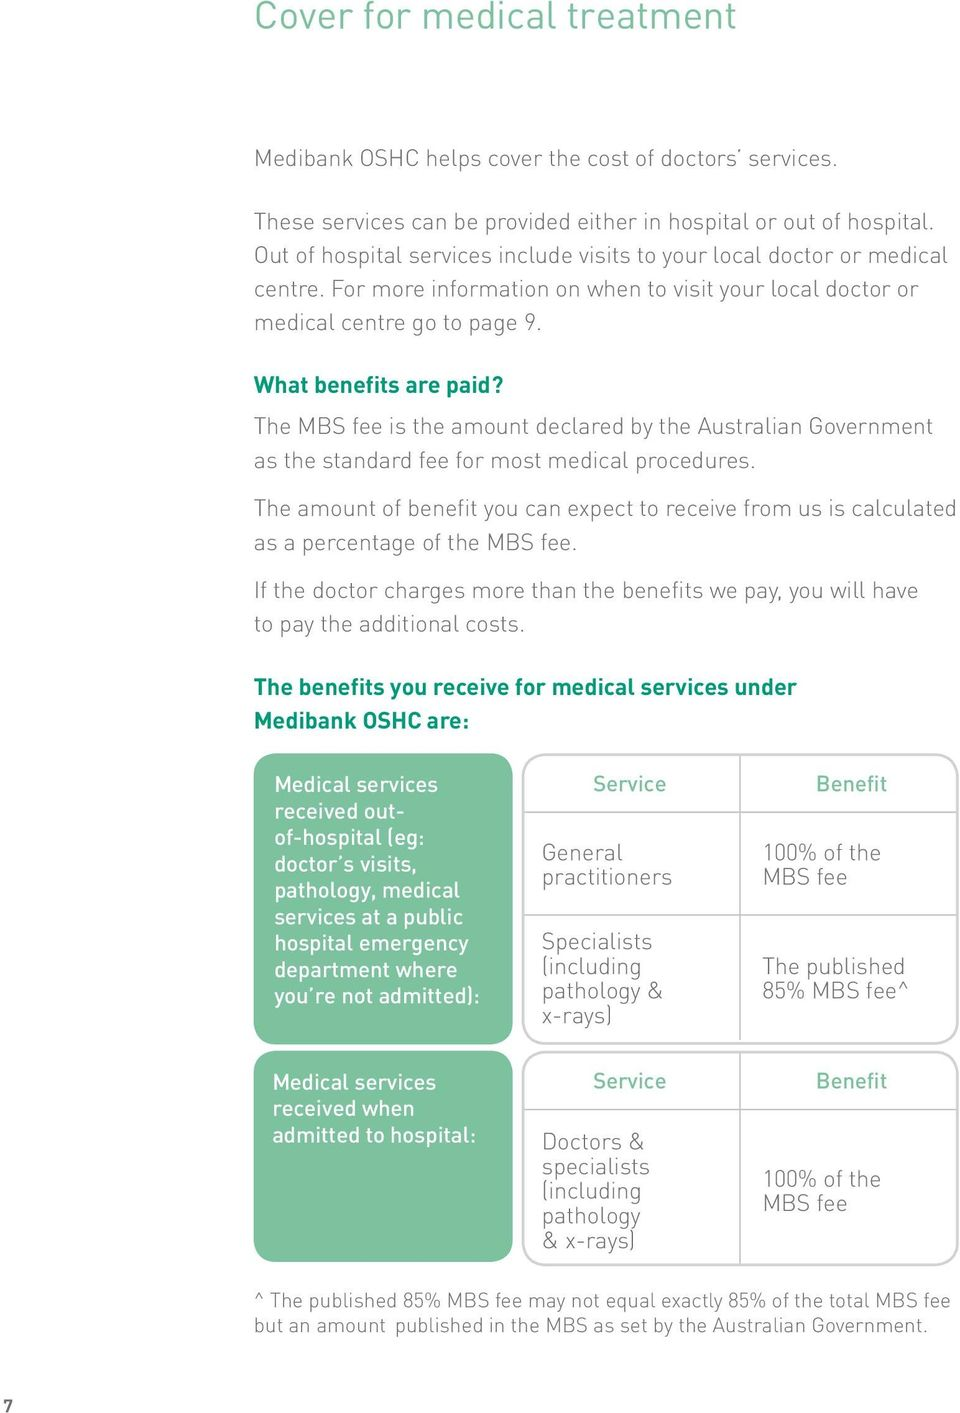 The MBS fee is the amount declared by the Australian Government as the standard fee for most medical procedures.